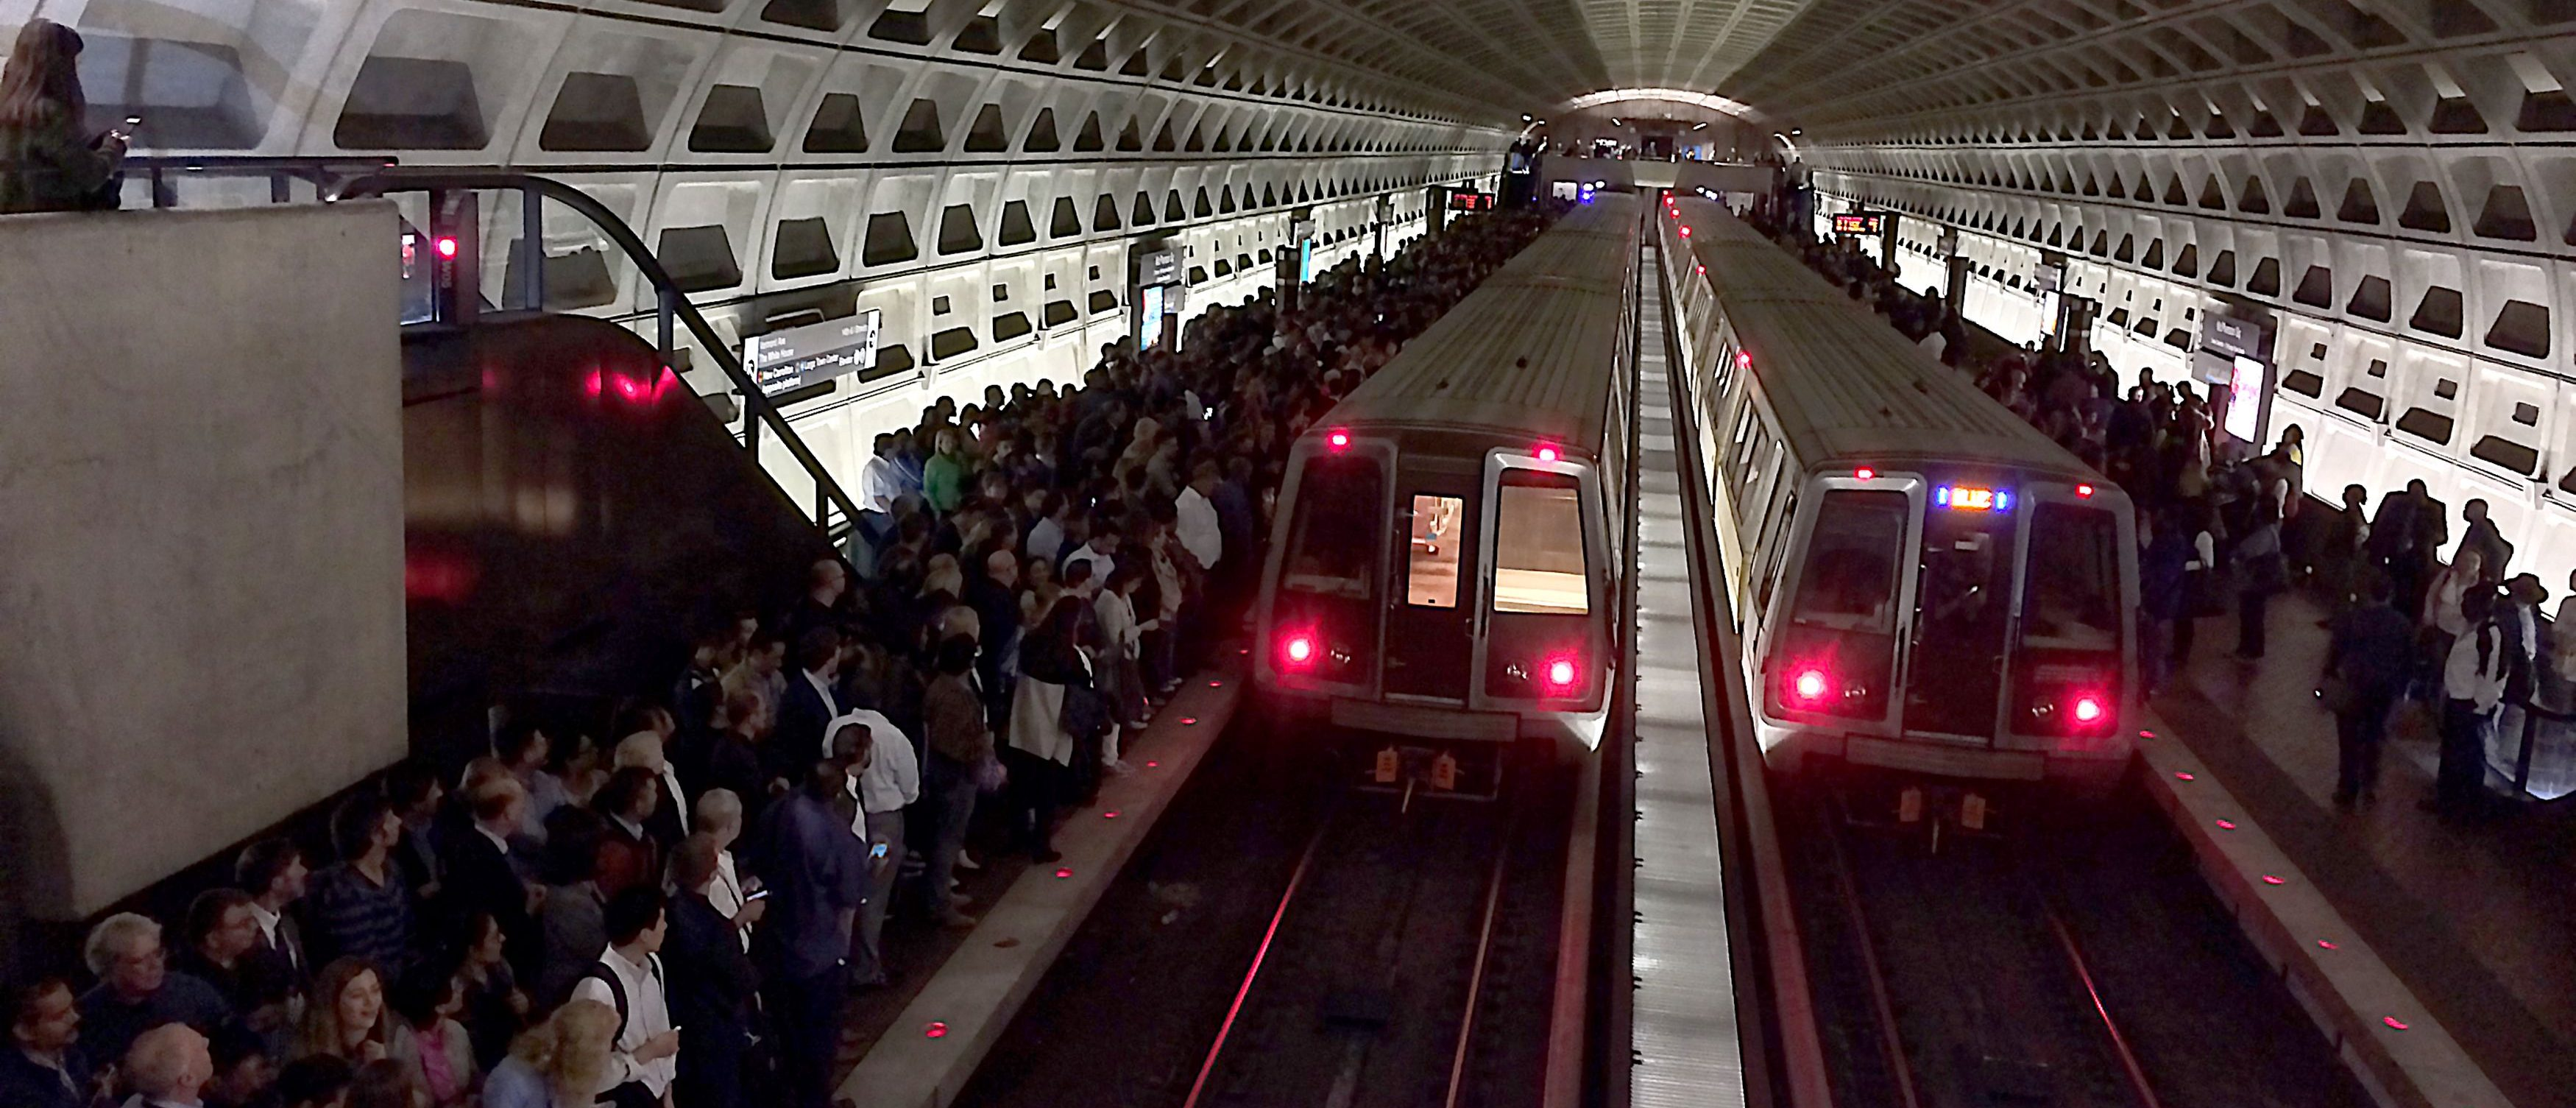 This October 11, 2016 photo shows hundreds of riders on the platform after system problems caused backups at the McPherson Square Metro stop in Washington, DC. KAREN BLEIER/AFP/Getty Images